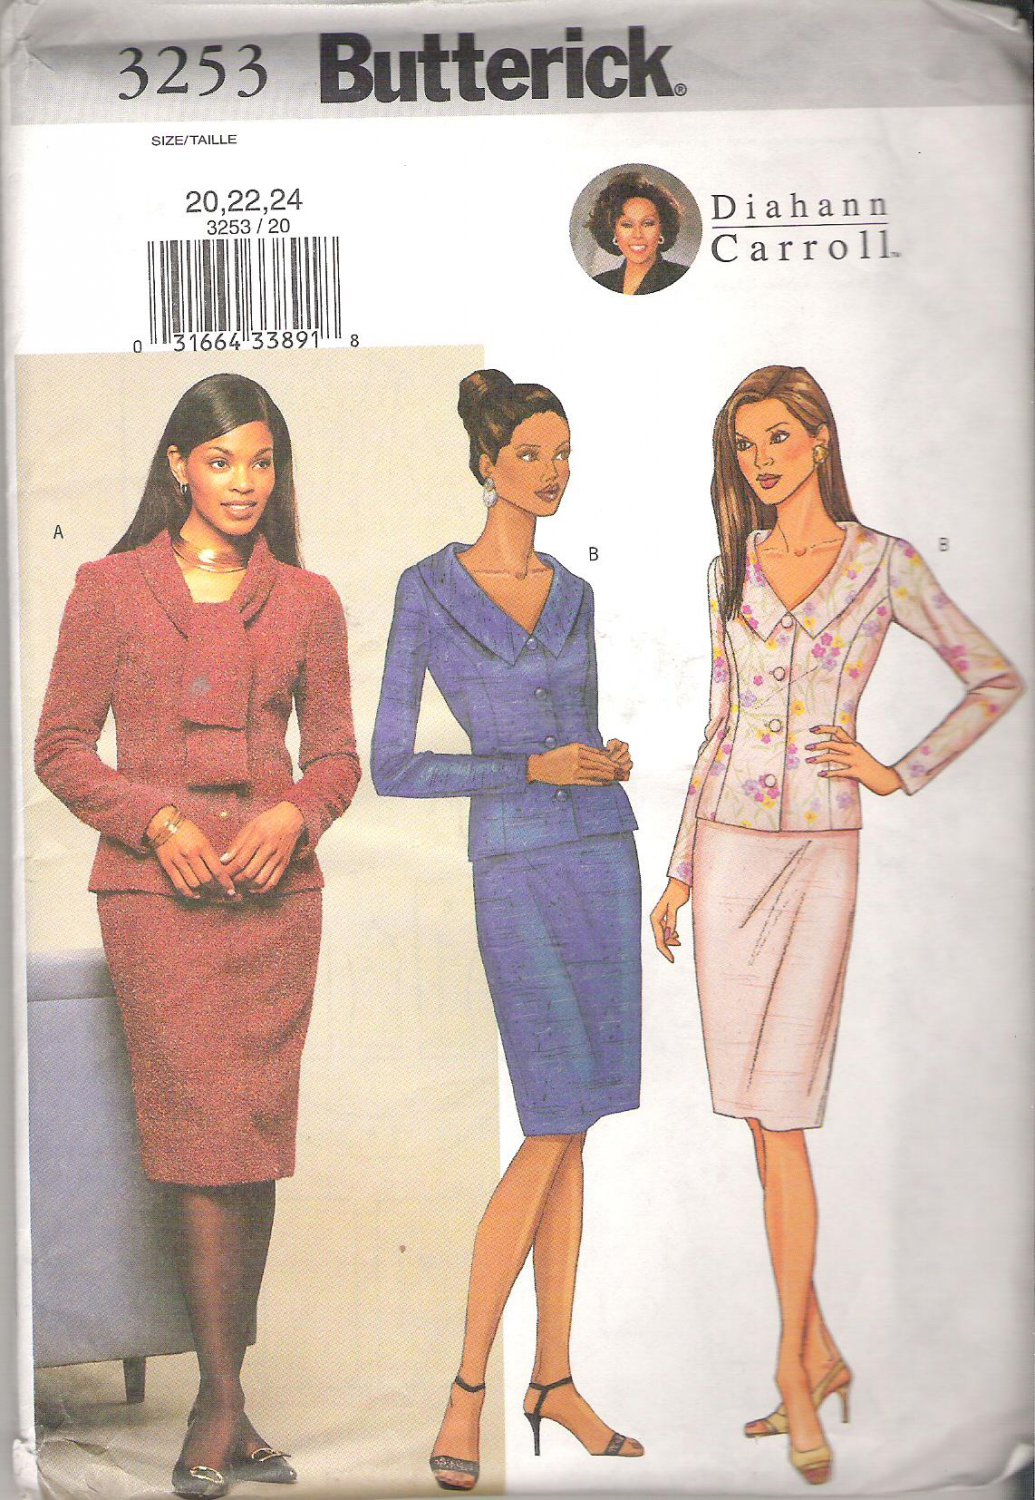 Butterick 3253 (2001) Diahann Carroll Petite Pattern Top Skirt  Size 20, 22, 24 Uncut